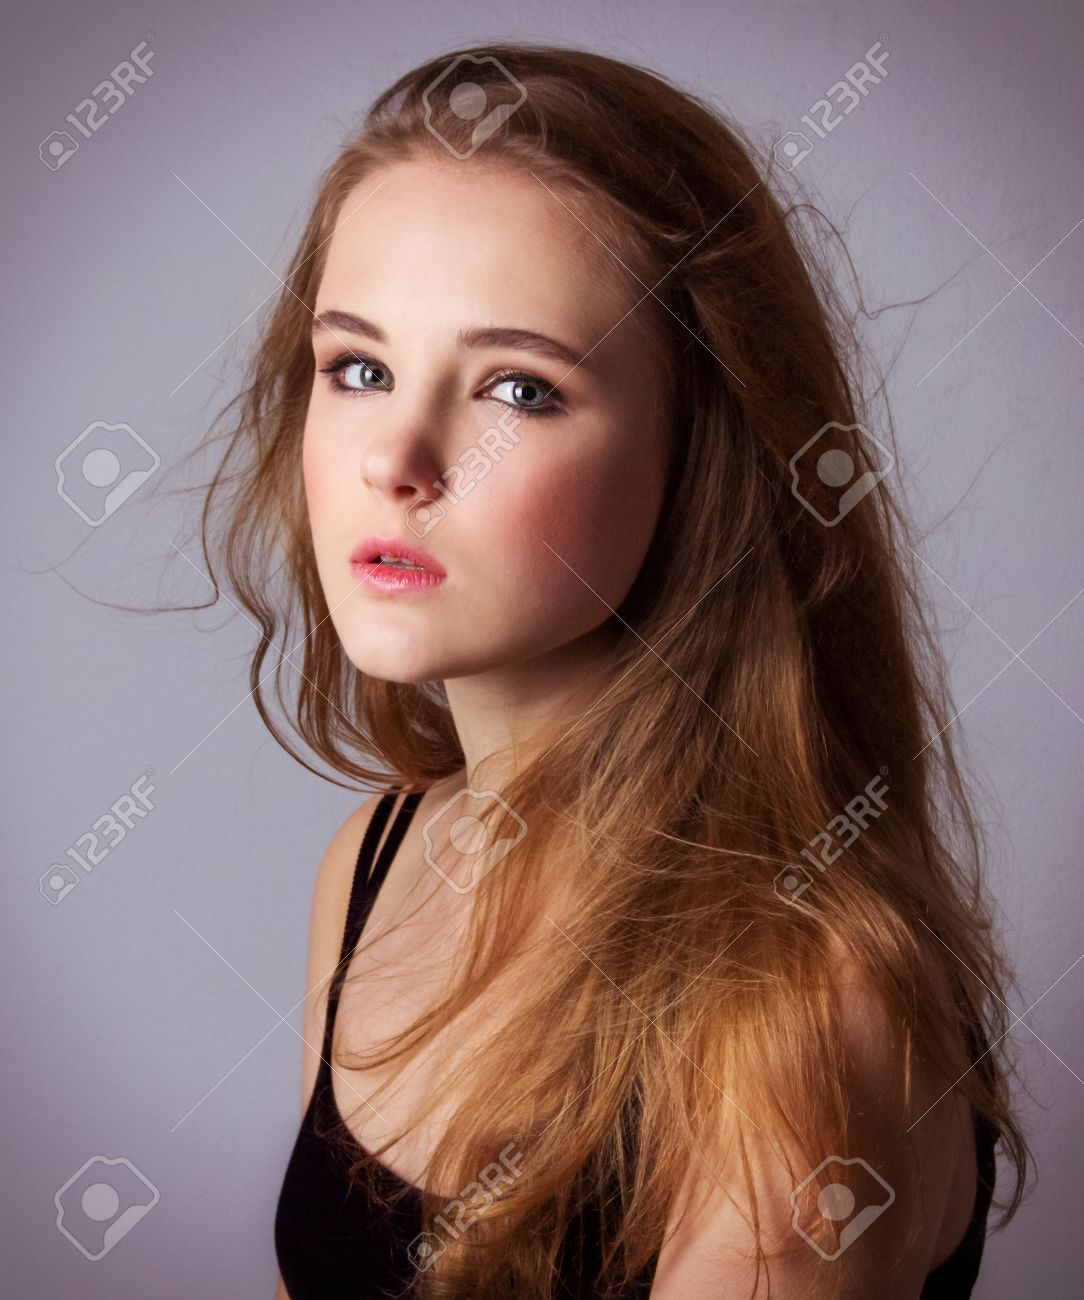 Girl  Positive  Model  Female  Happy  Woman  Young Alamy